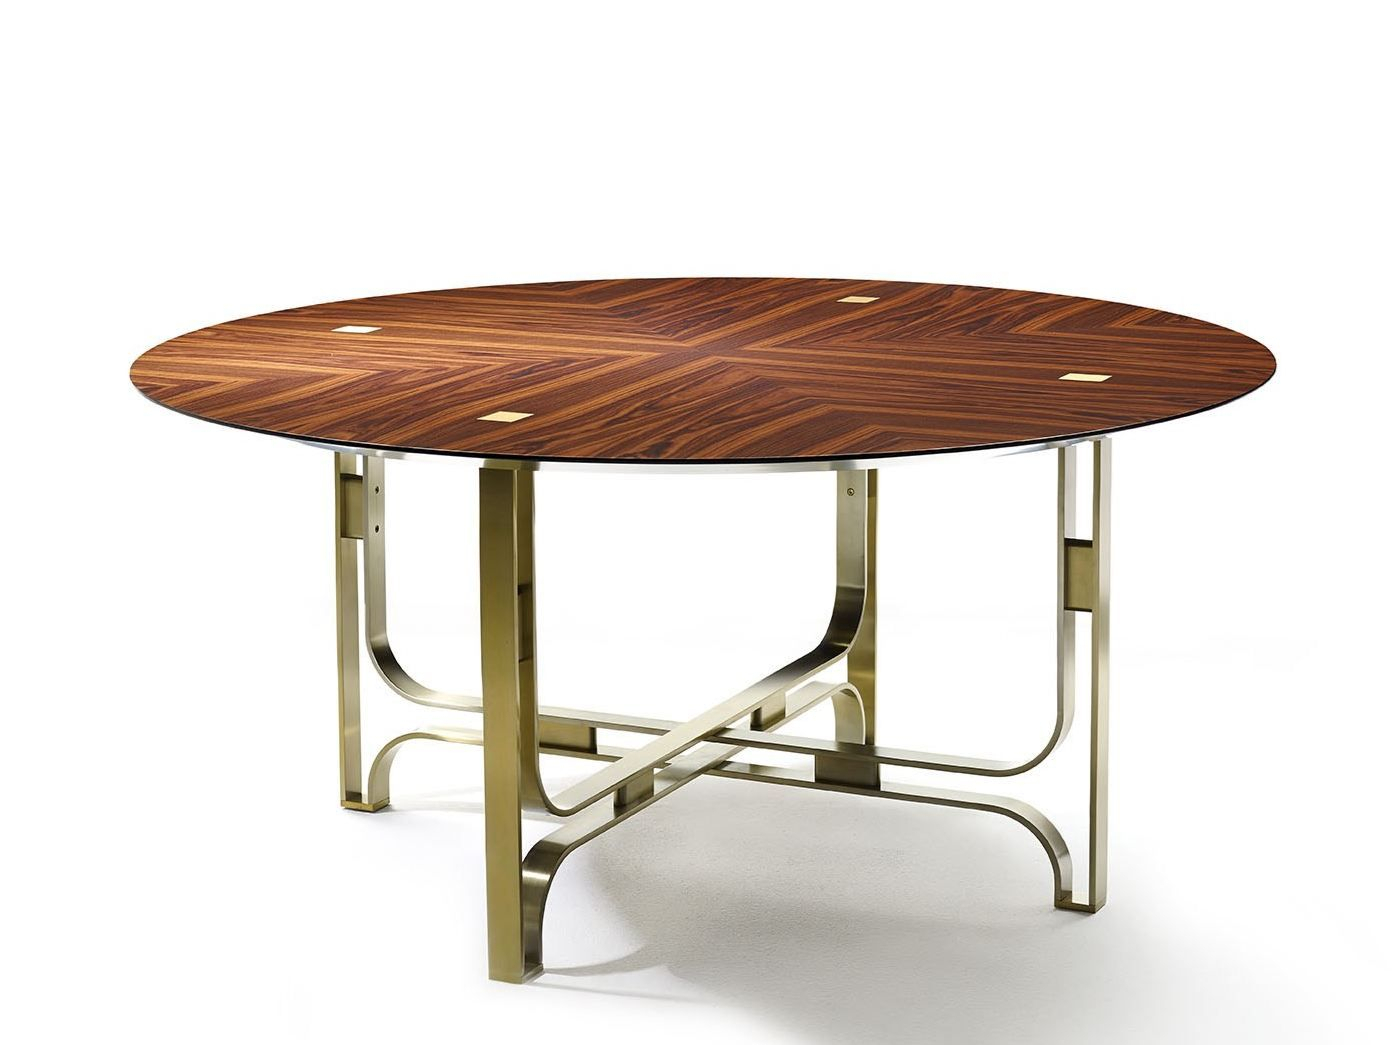 Gregory | Round Tablemarioni Design Studio 63 | Round Throughout Most Popular Bekasi 63'' Dining Tables (View 7 of 15)